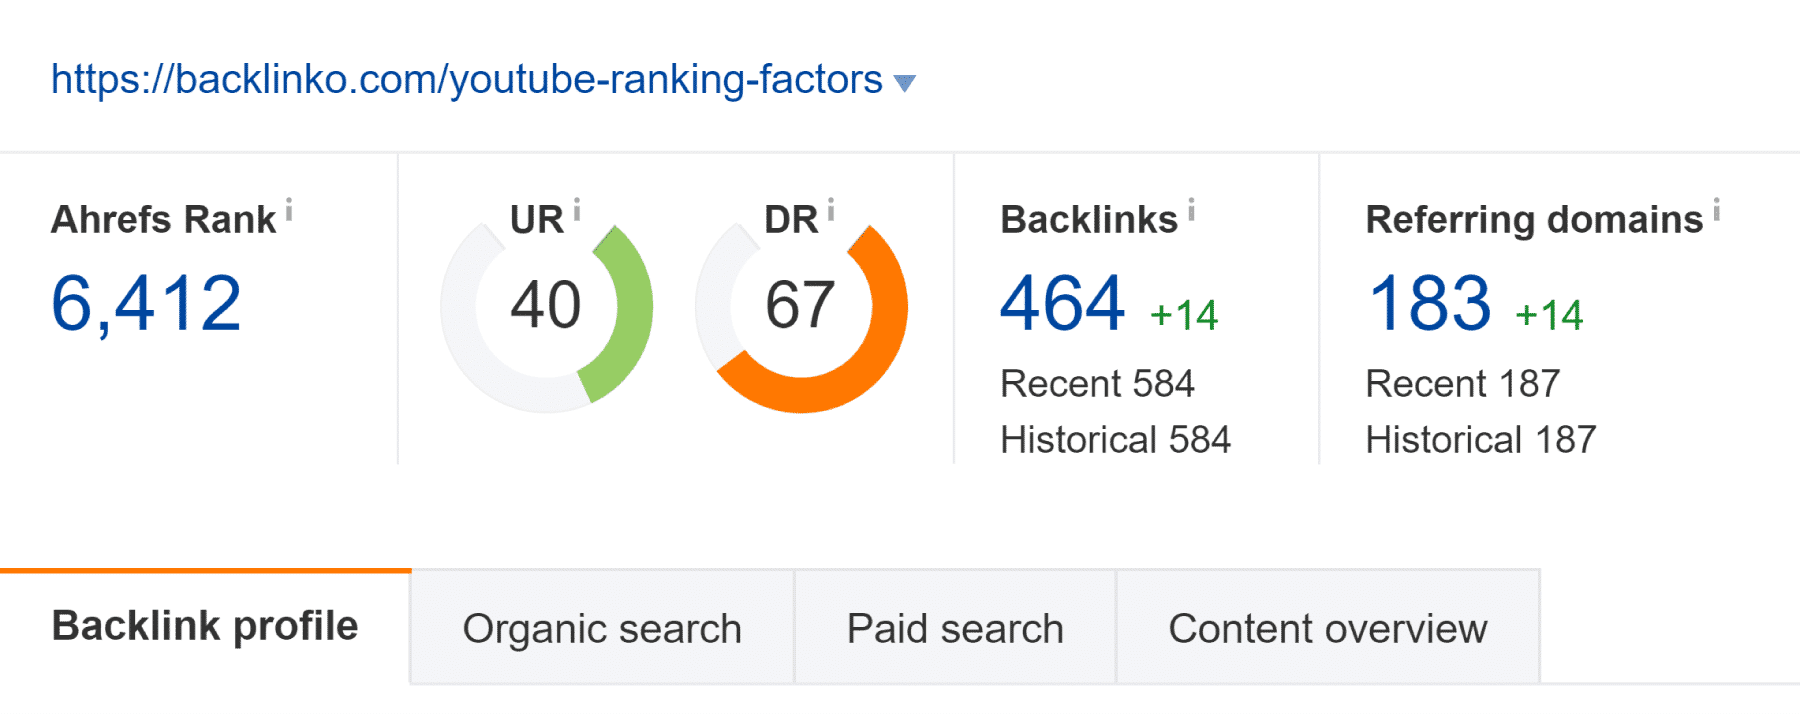 ۸_۵_youtube-ranking-factors-results